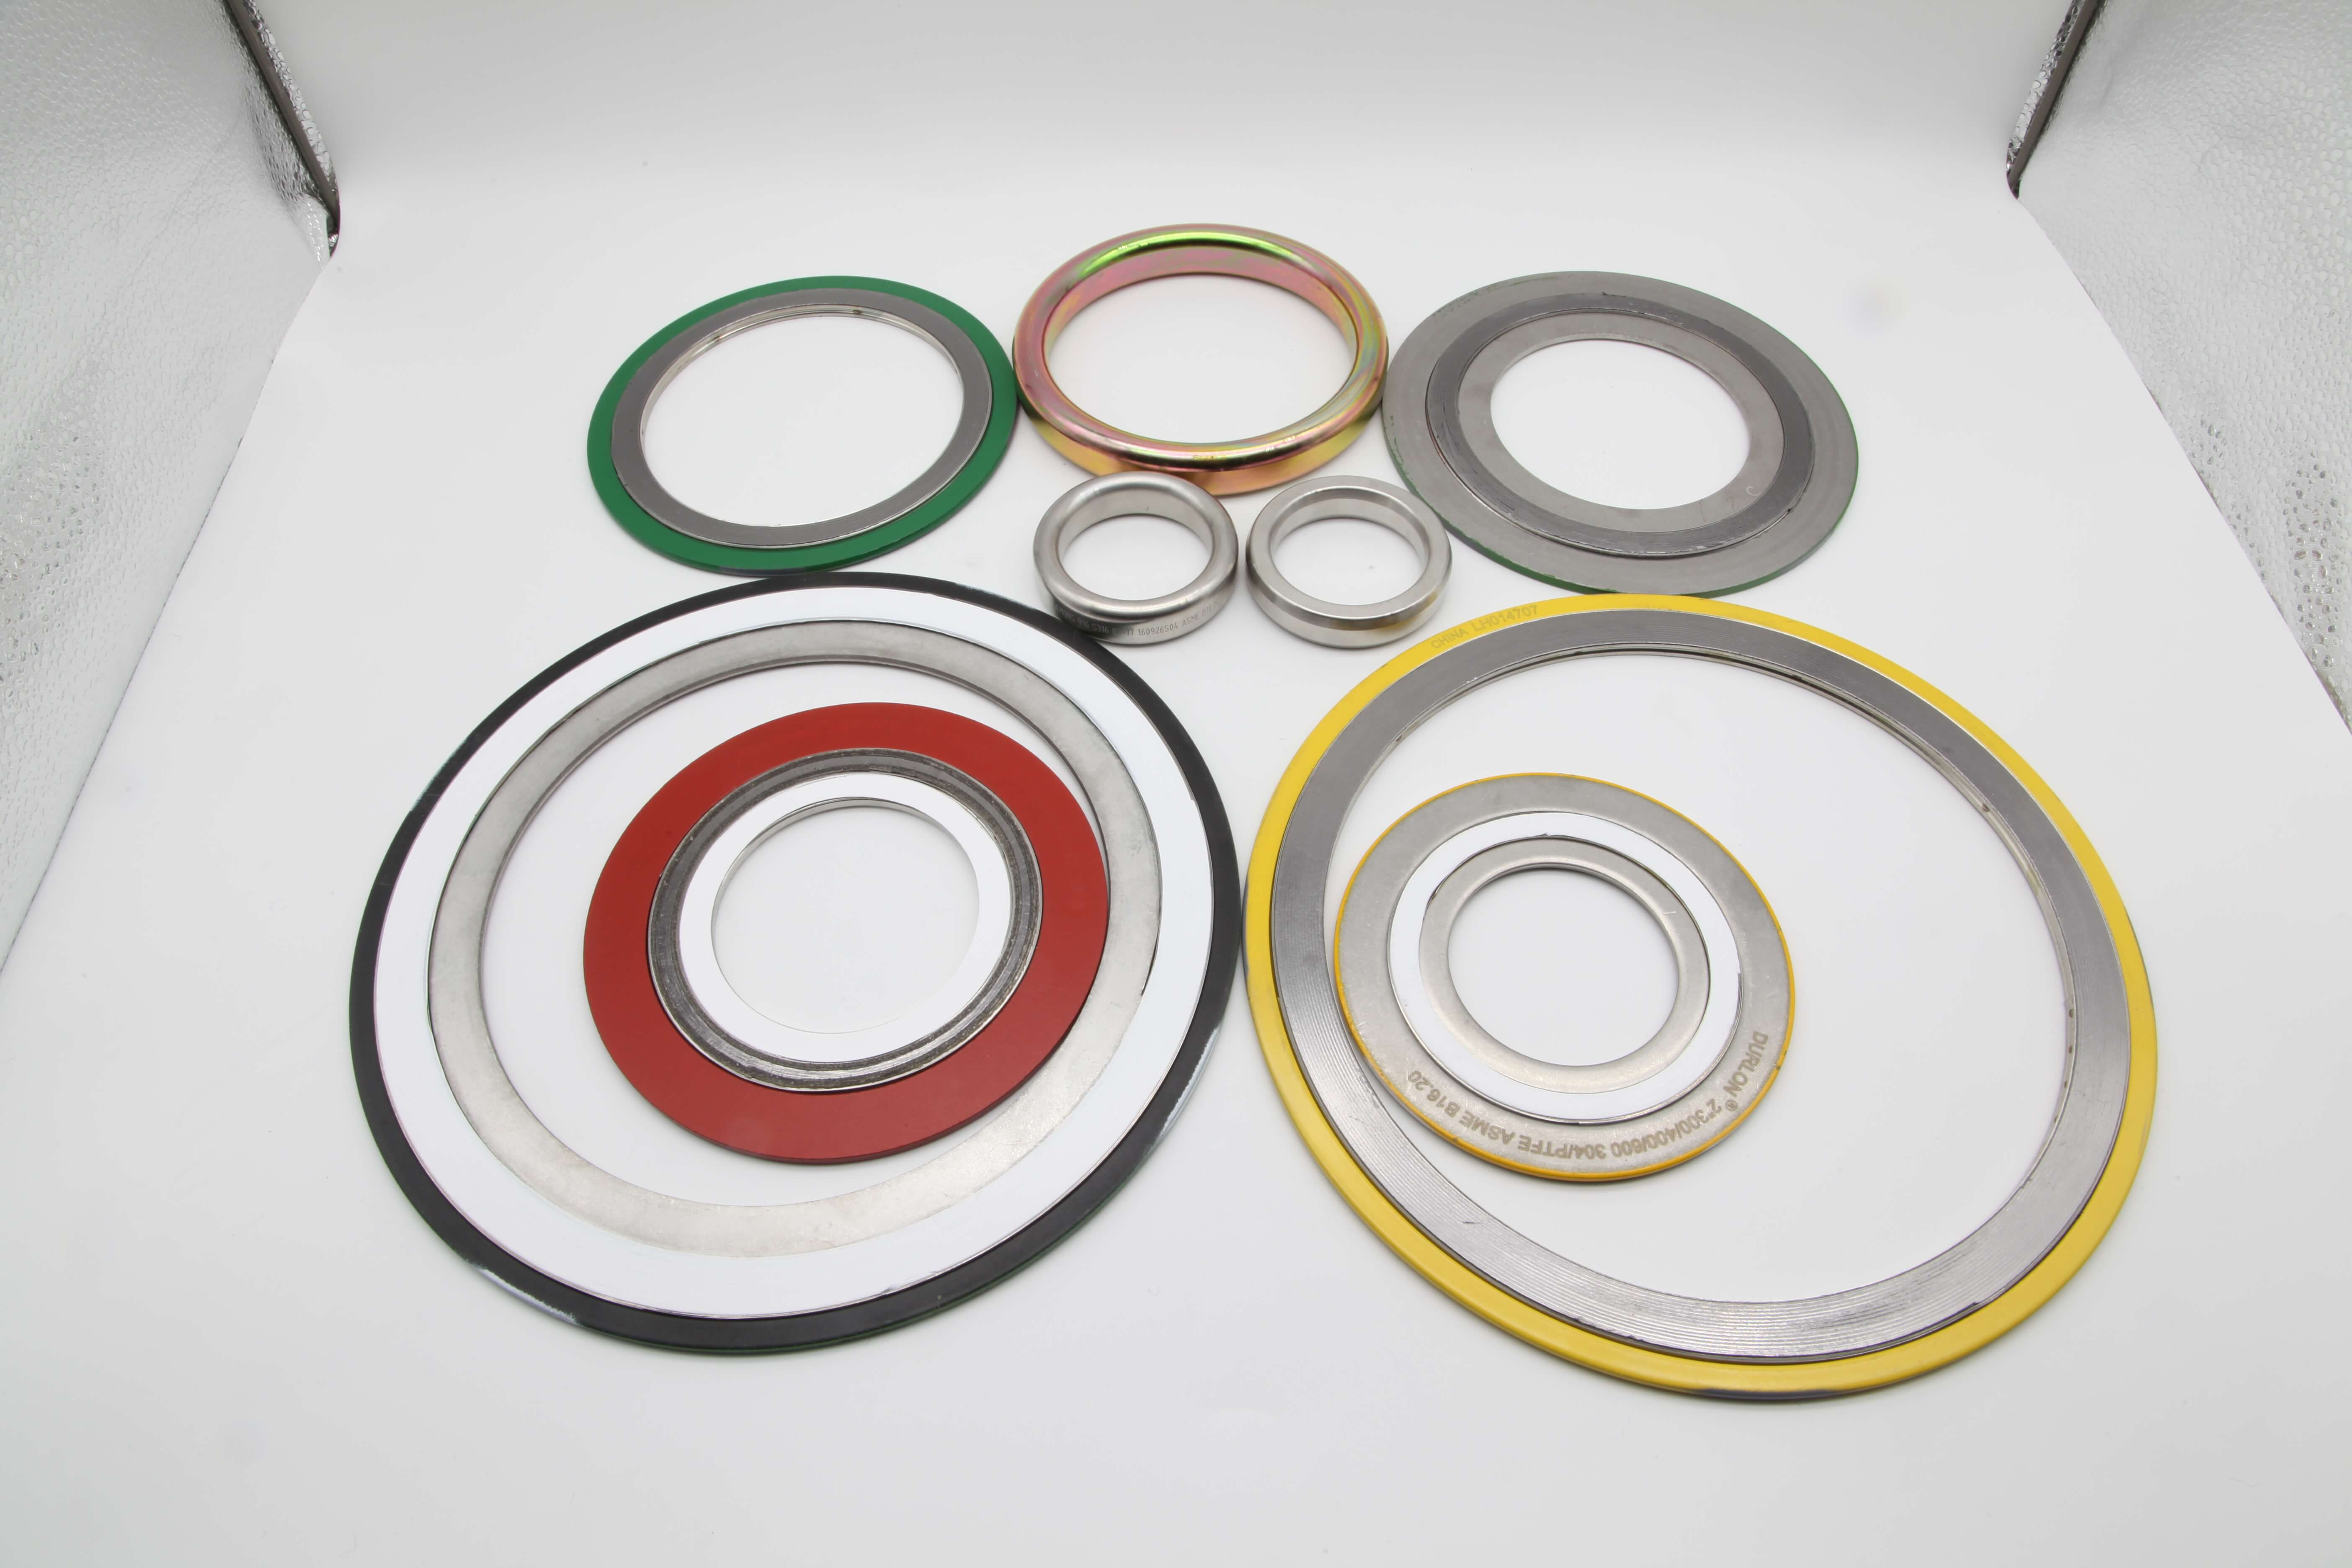 How to choose the proper Spiral Wound Gasket?